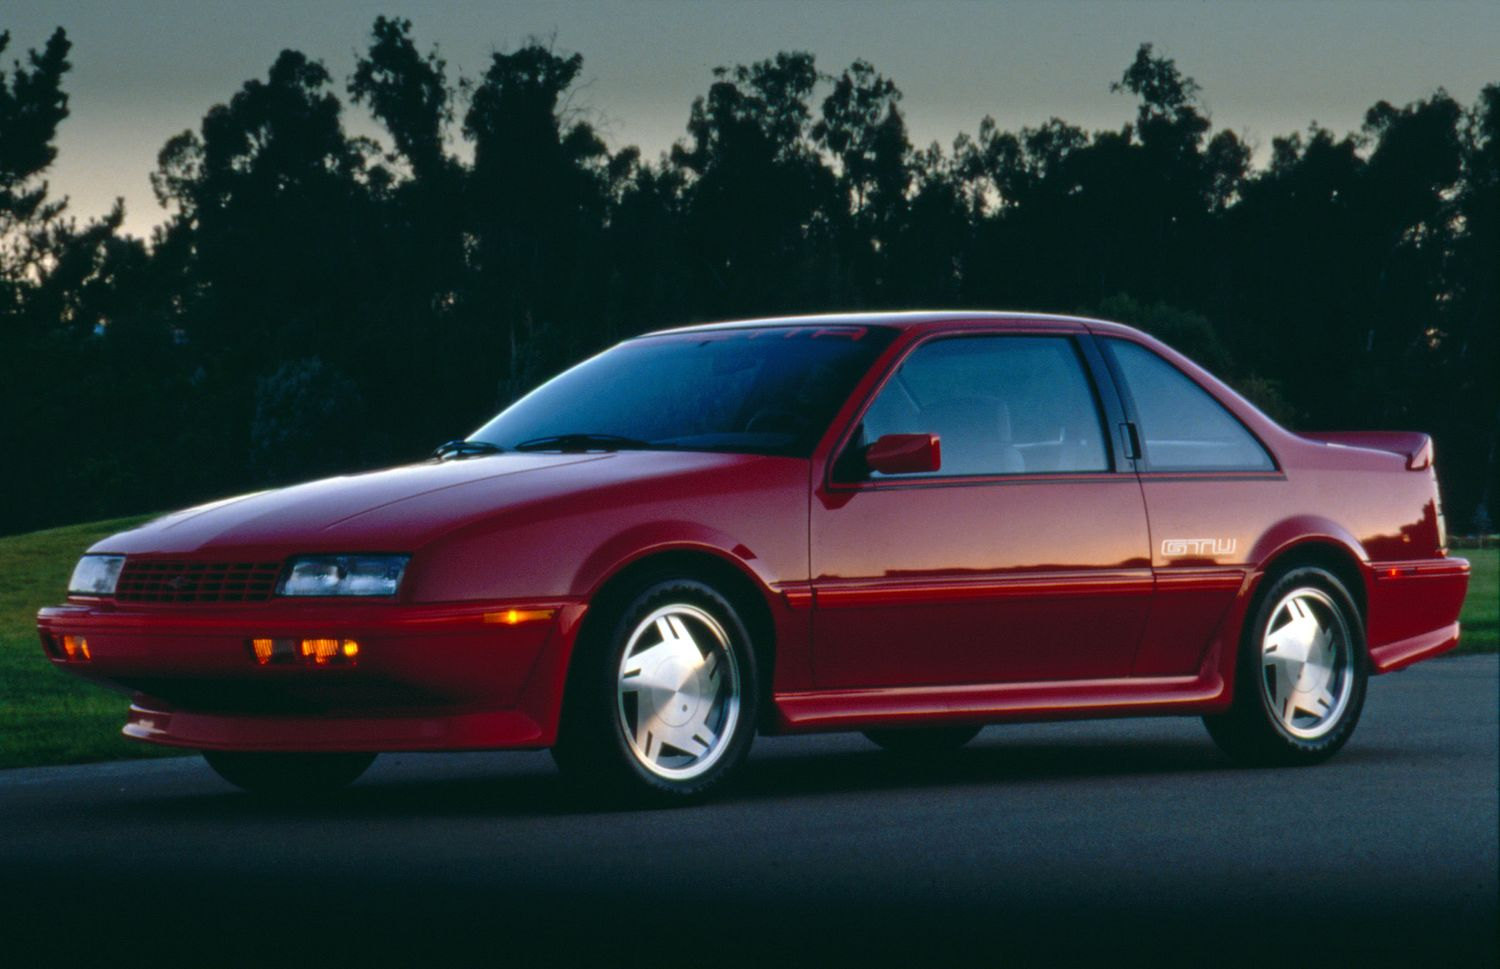 All Chevy » 1990 Chevrolet Beretta - Old Chevy Photos Collection, All Makes All Models